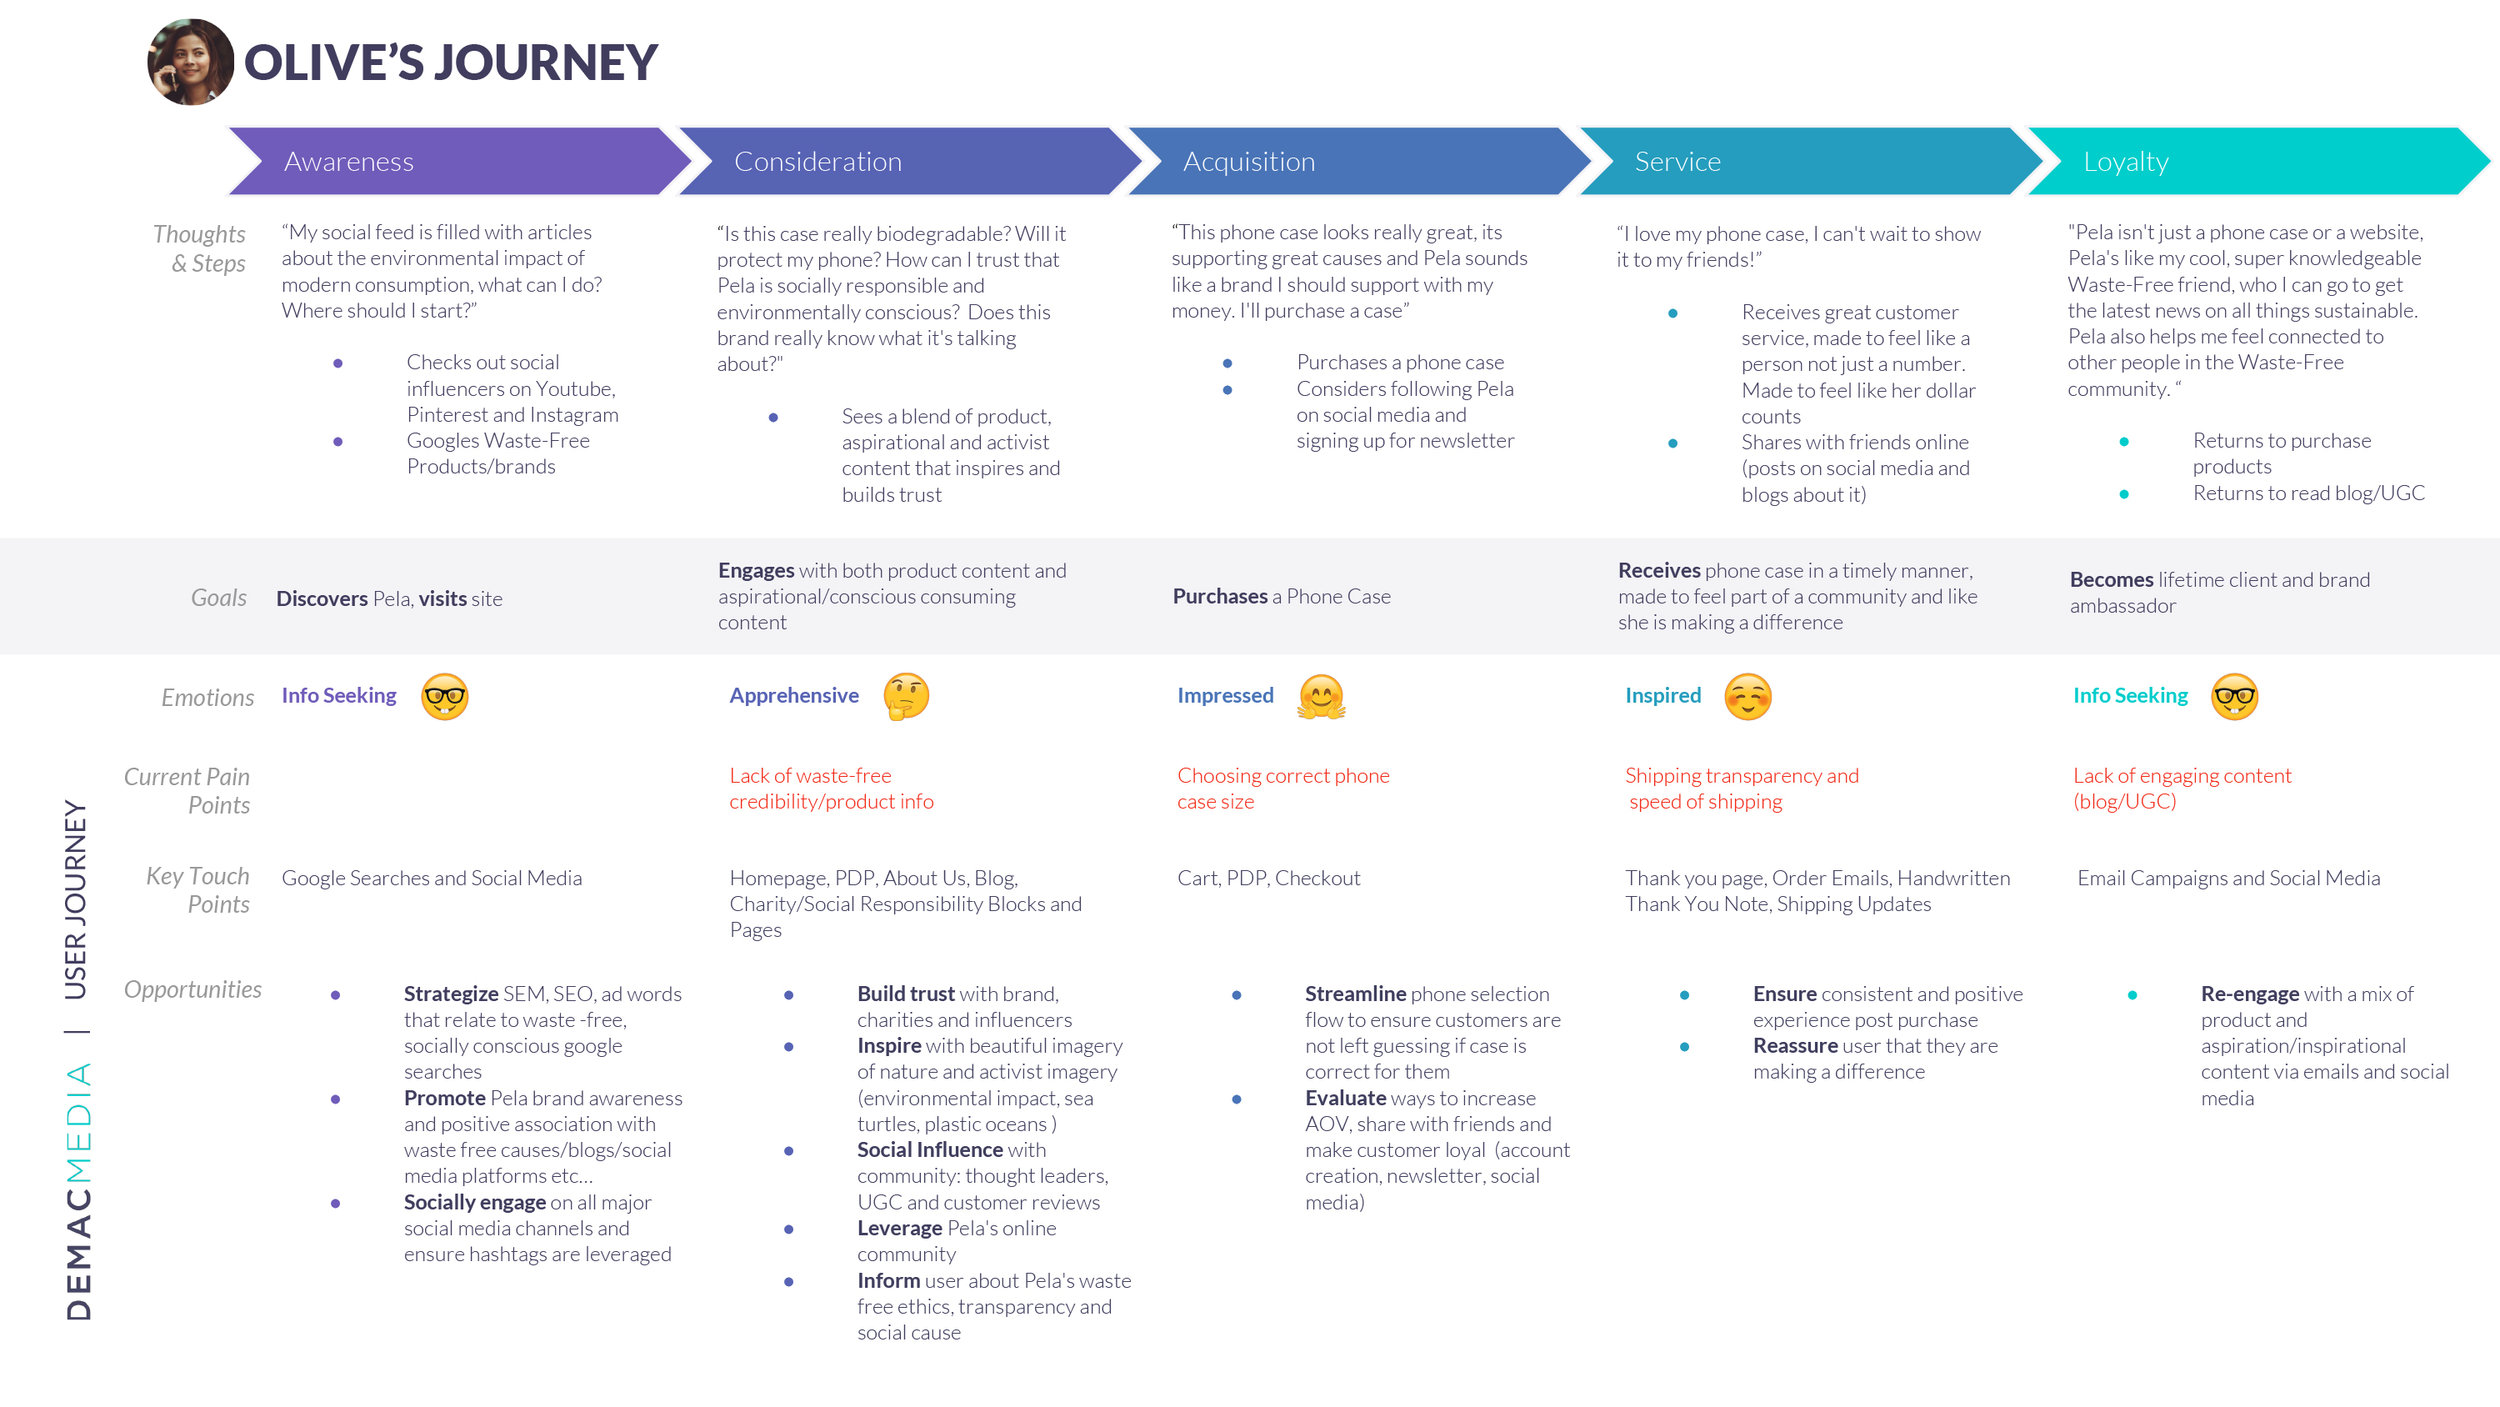 Image: Pela's UX Journey, for Olive Walden